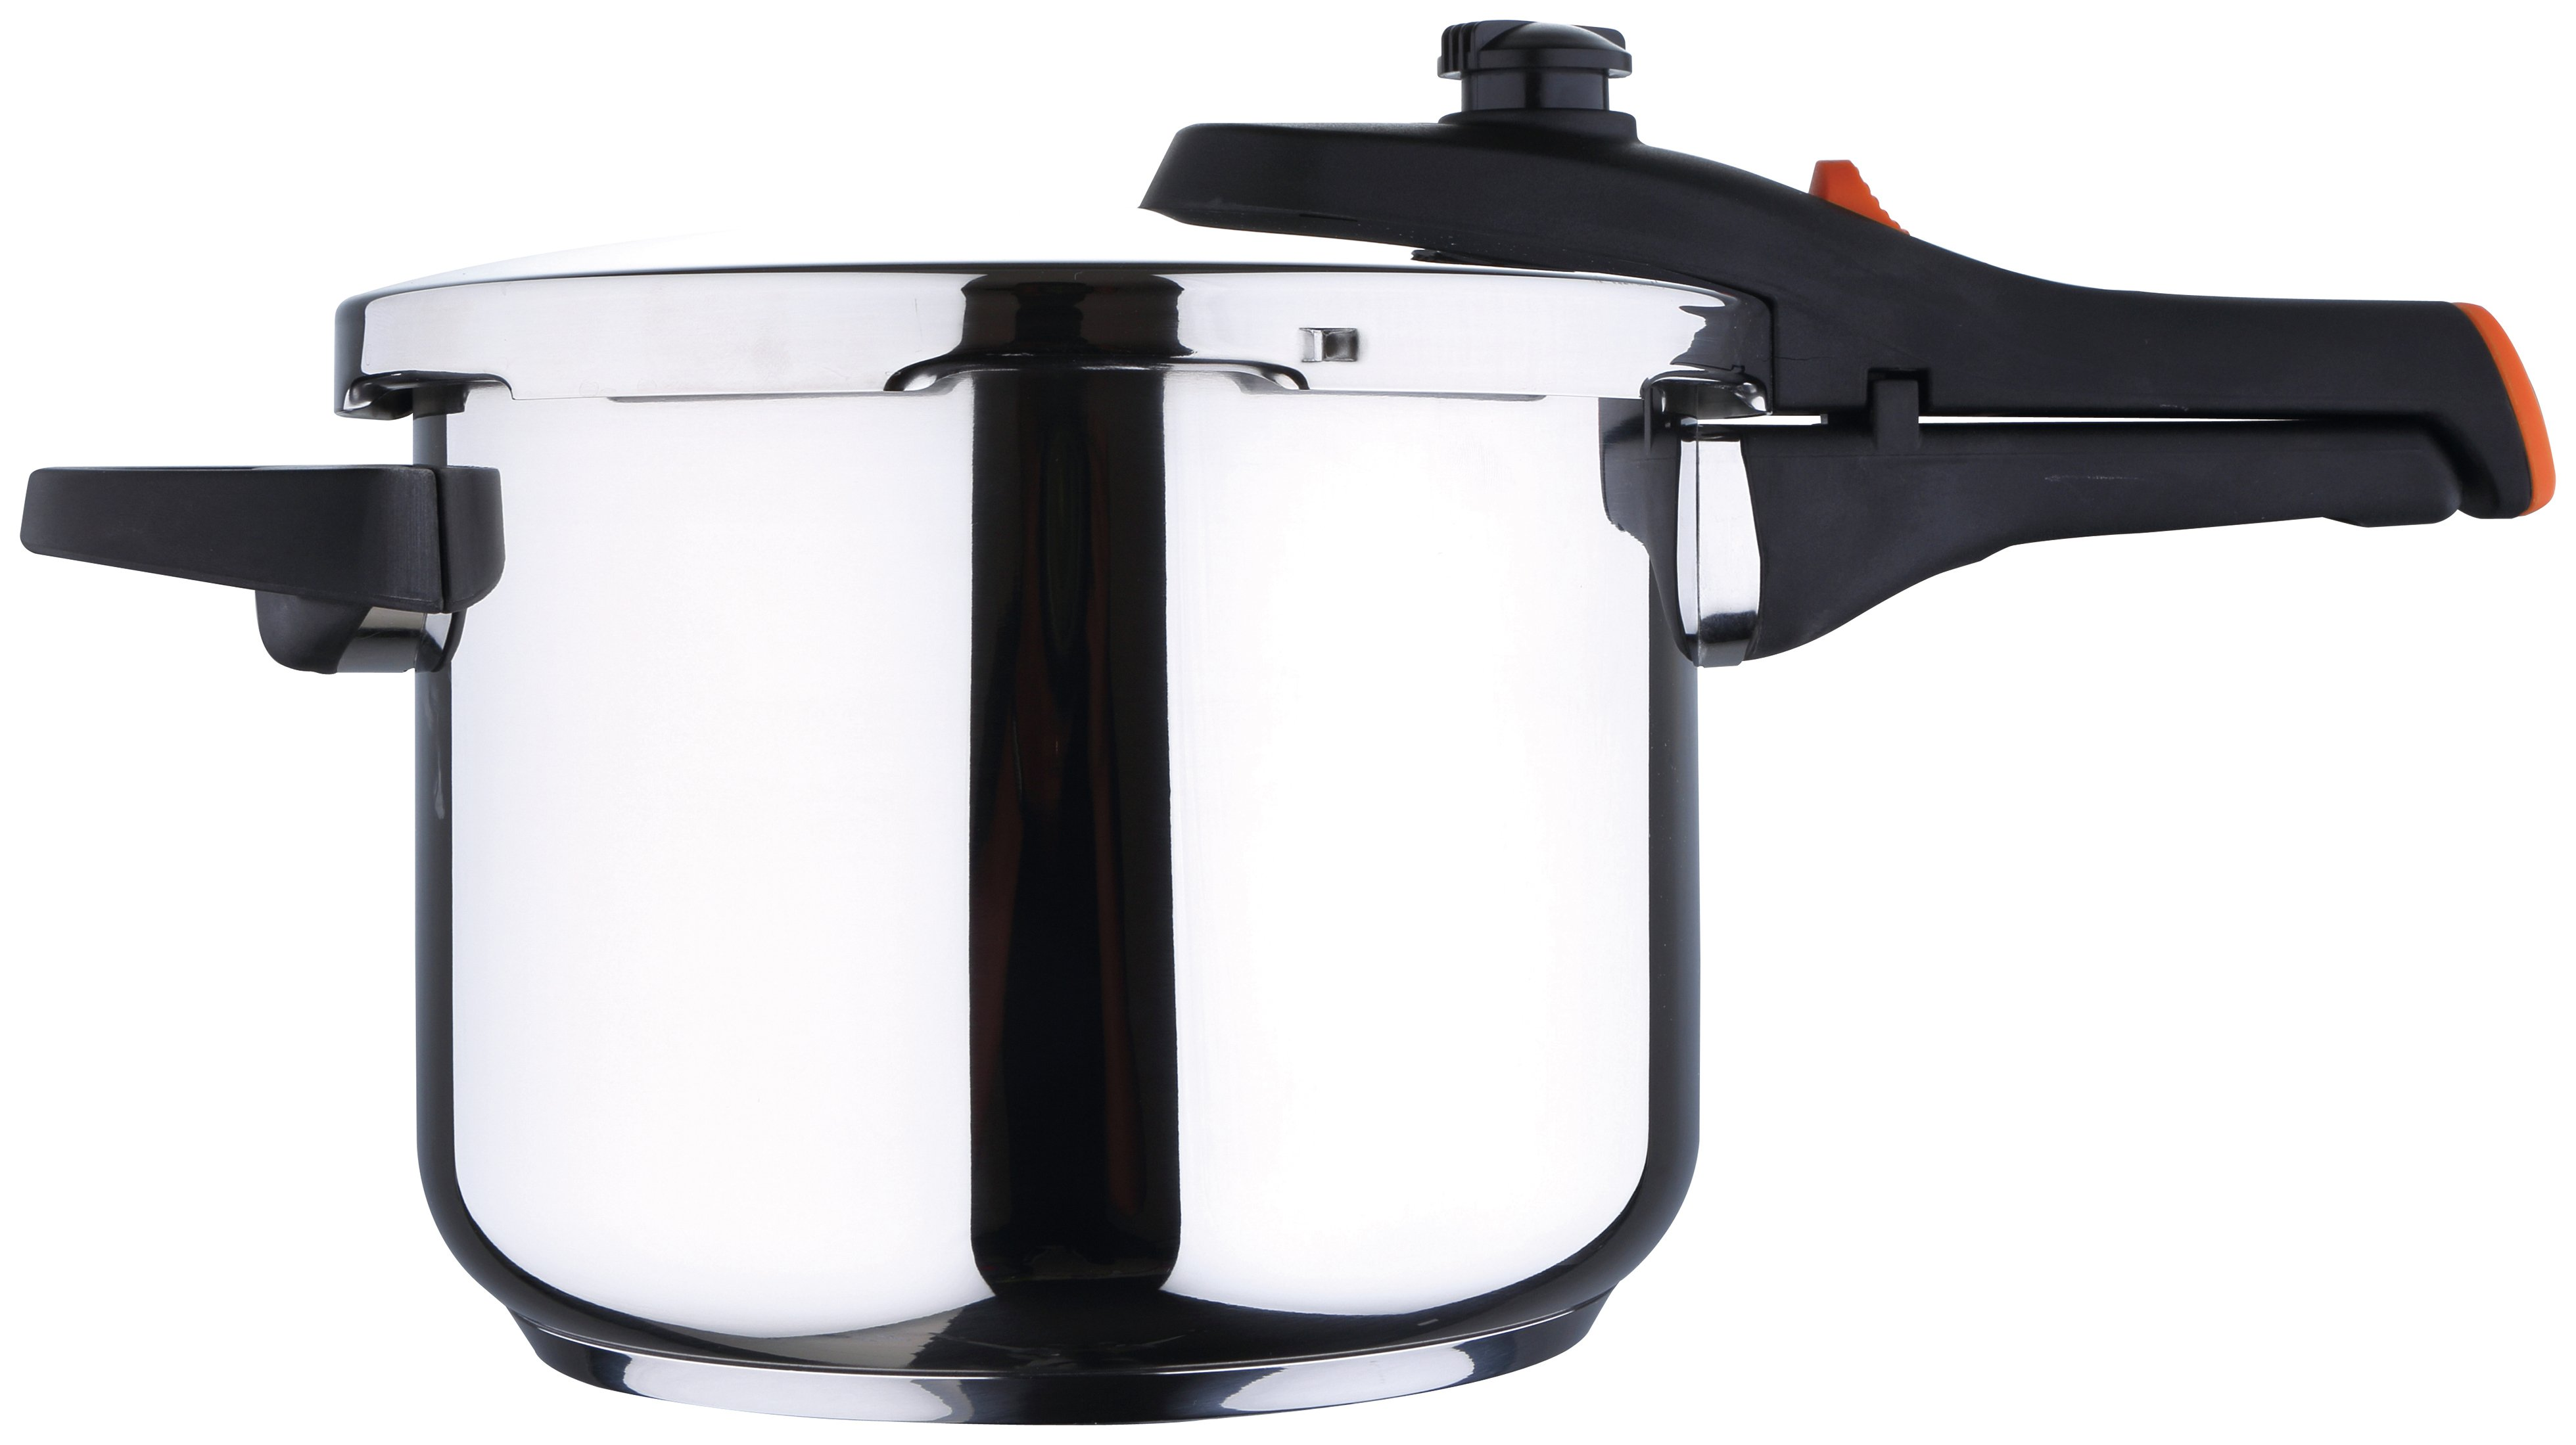 Image of Chef Sauce 6 Litre Stainless Steel Pressure Cooker.